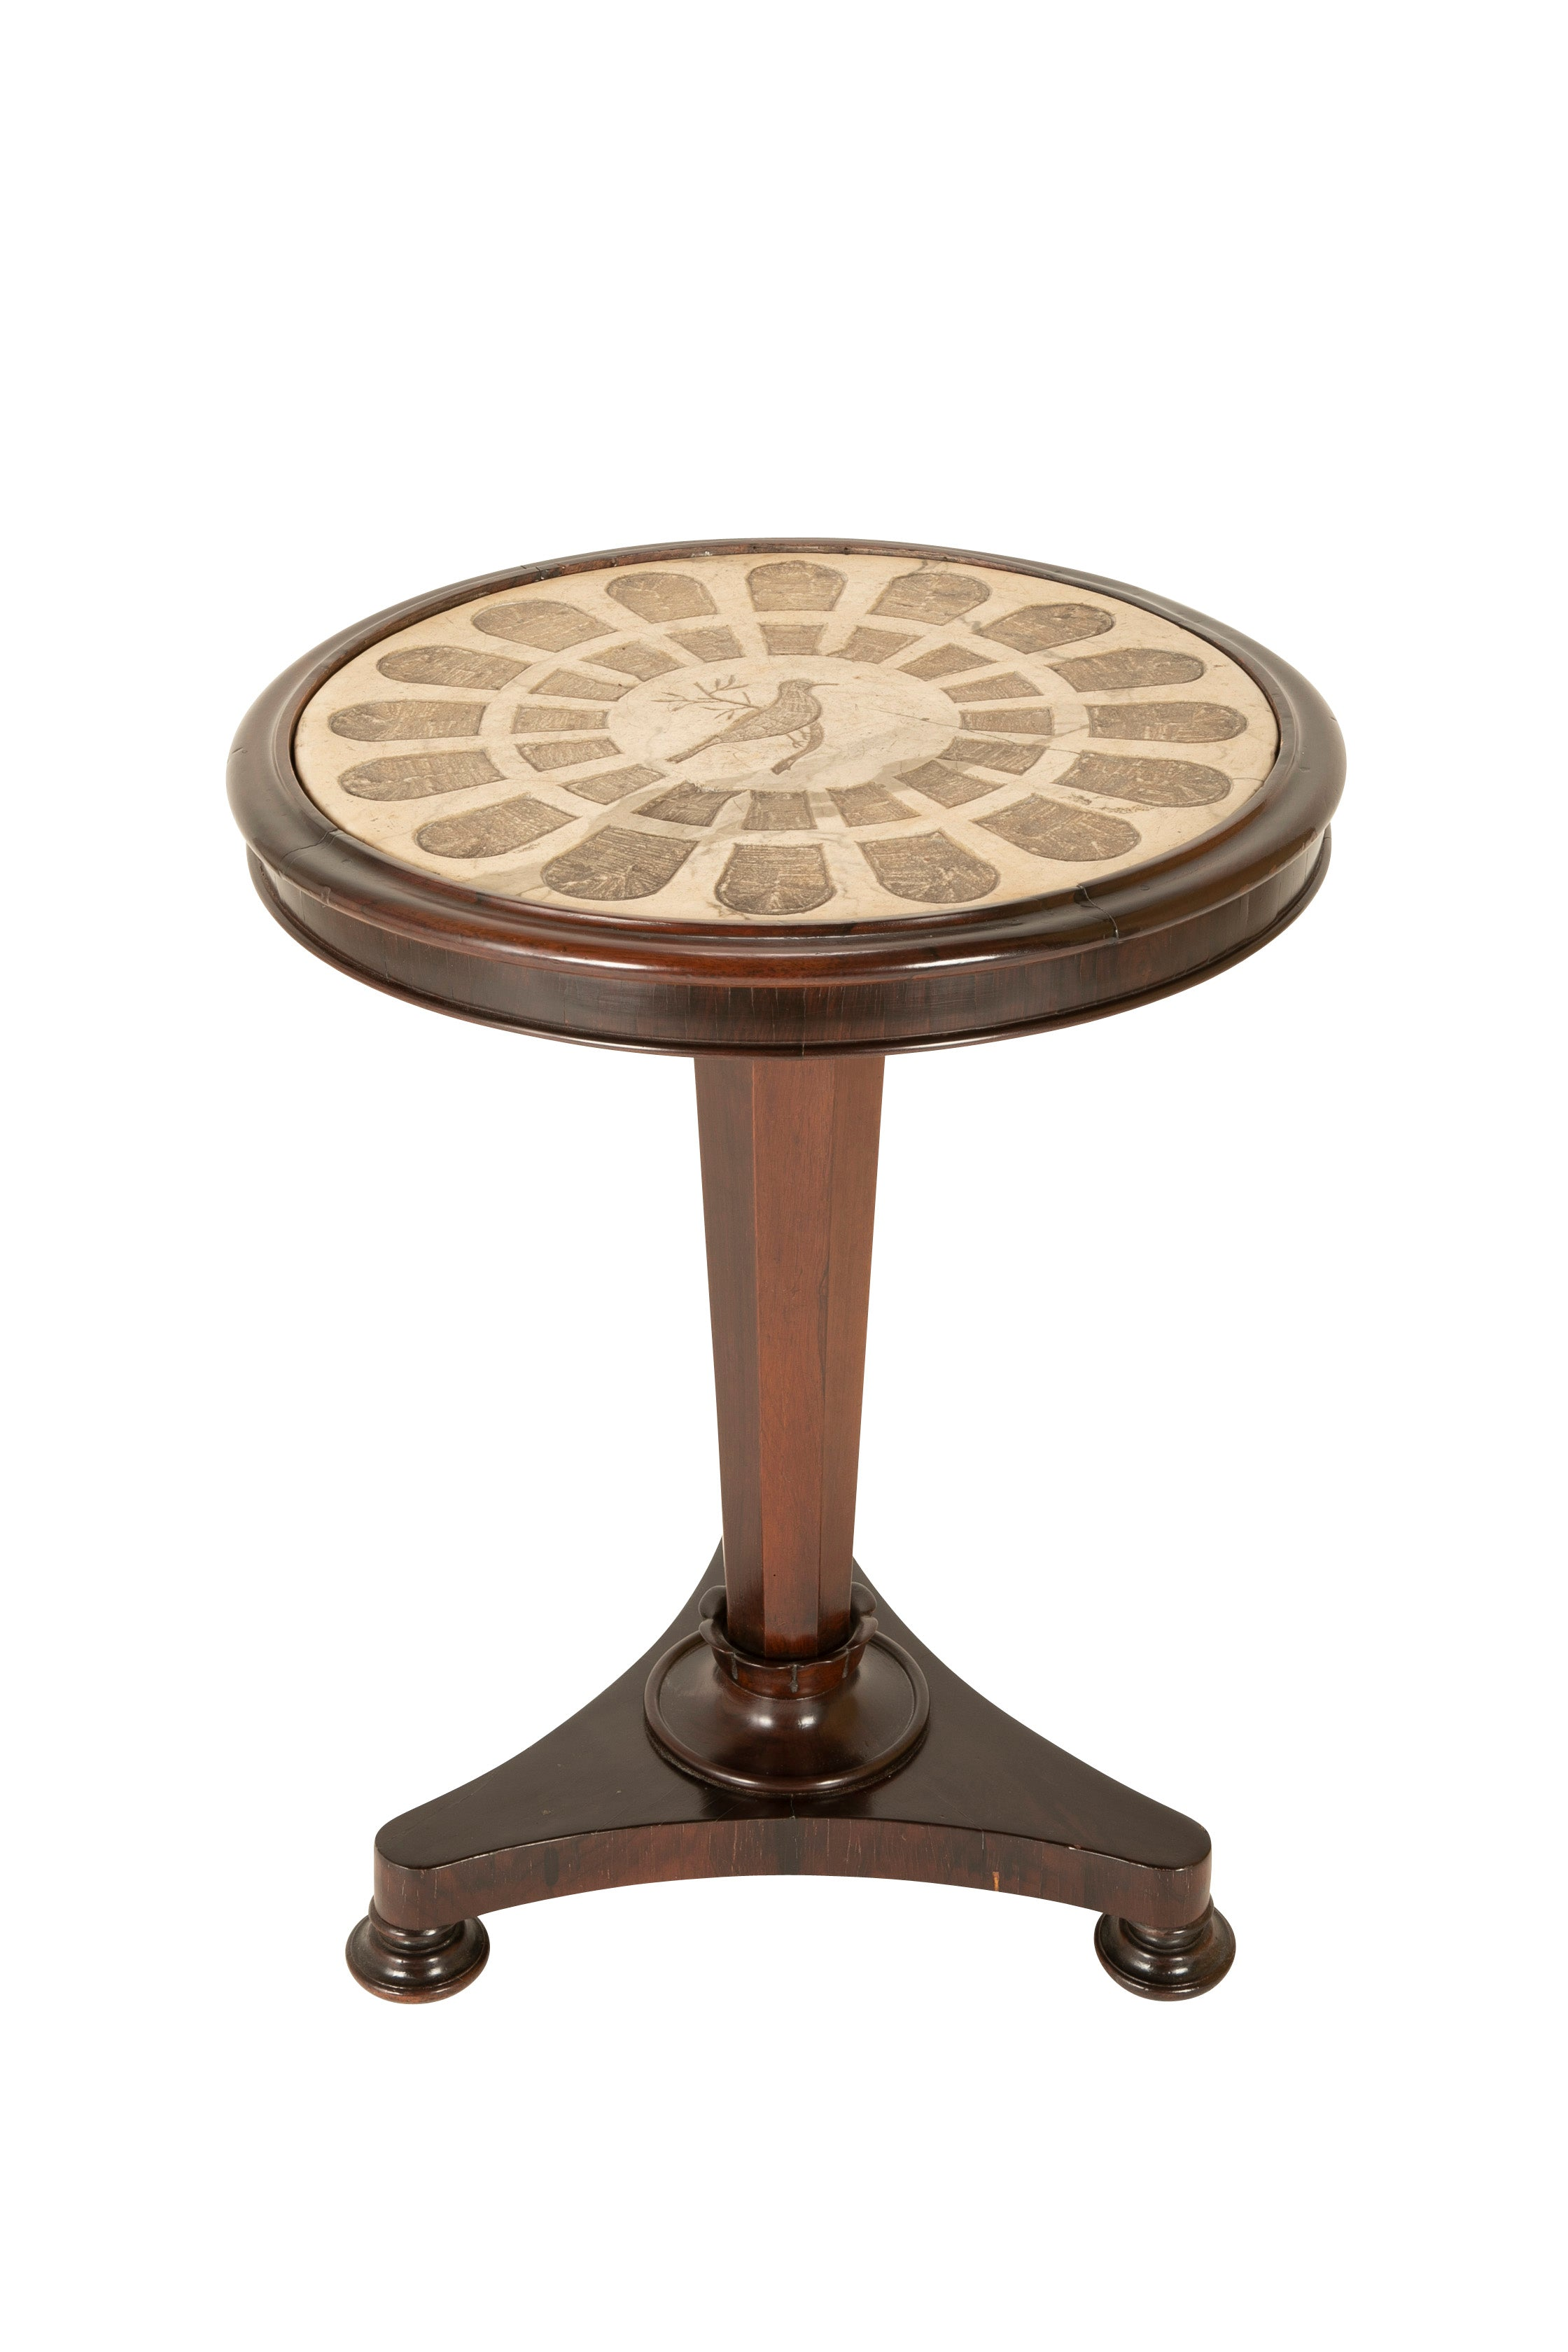 An English Rosewood Side Table with Banded Carved Marble Insert Top